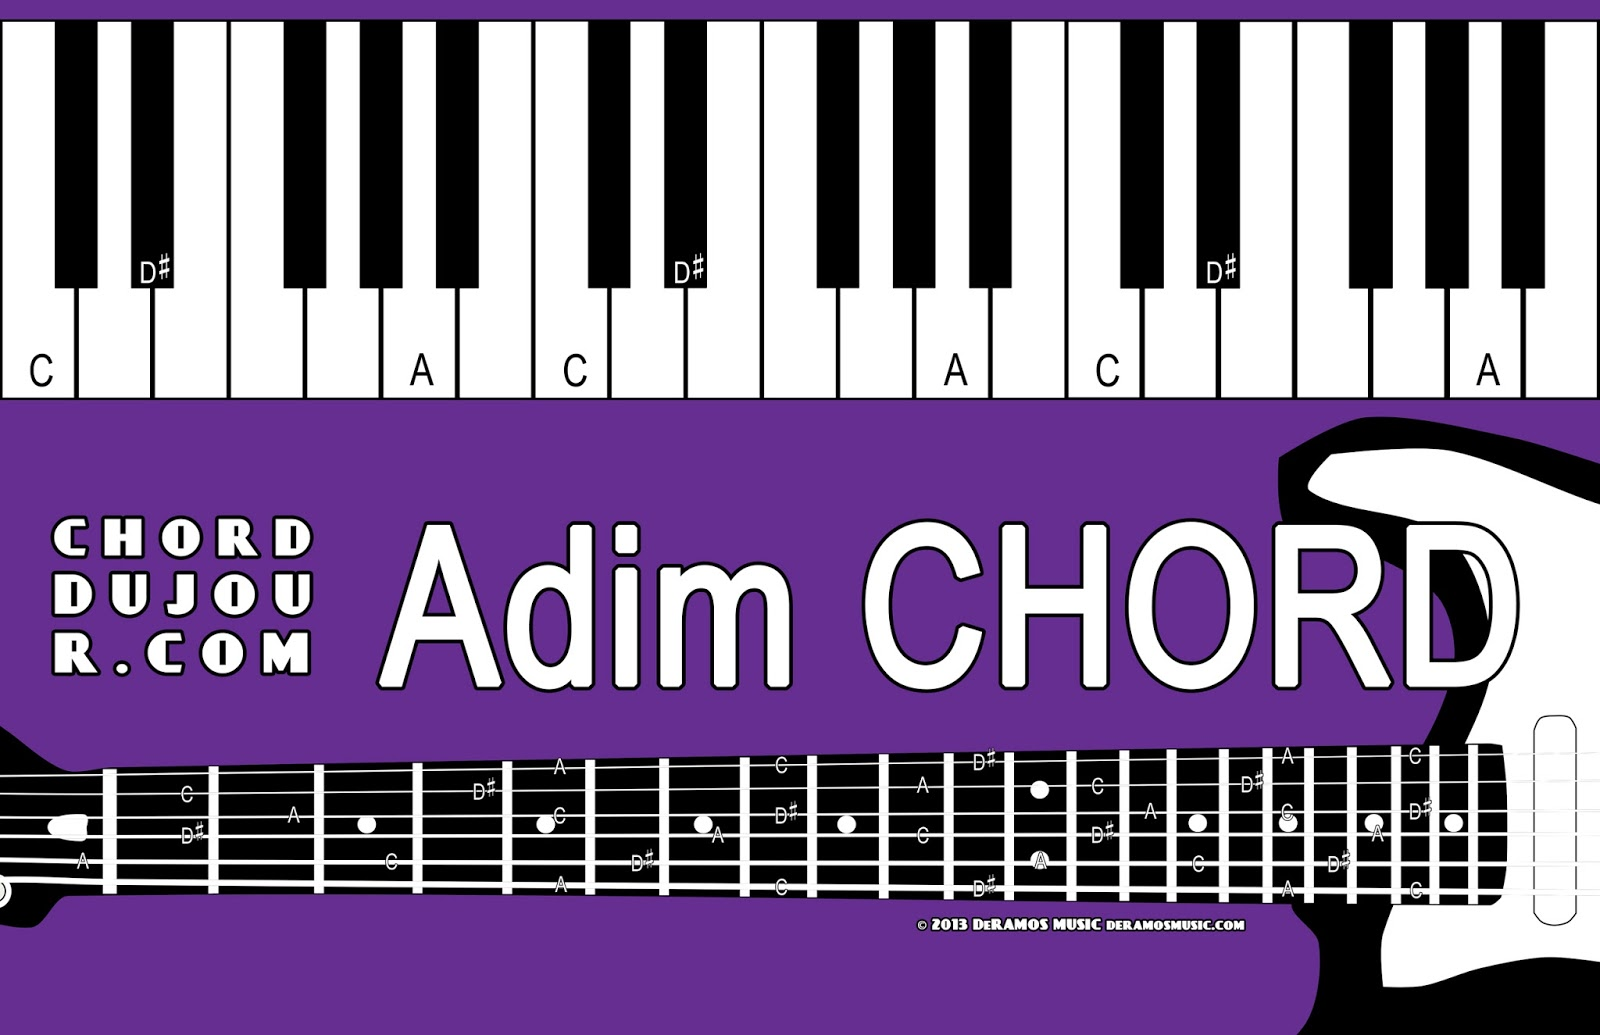 Chord du jour dictionary adim chord if youre looking for a simpler guitar chord chart check out this entry from june 2008 here is a misspelling of the adim chord not in a c e format hexwebz Gallery